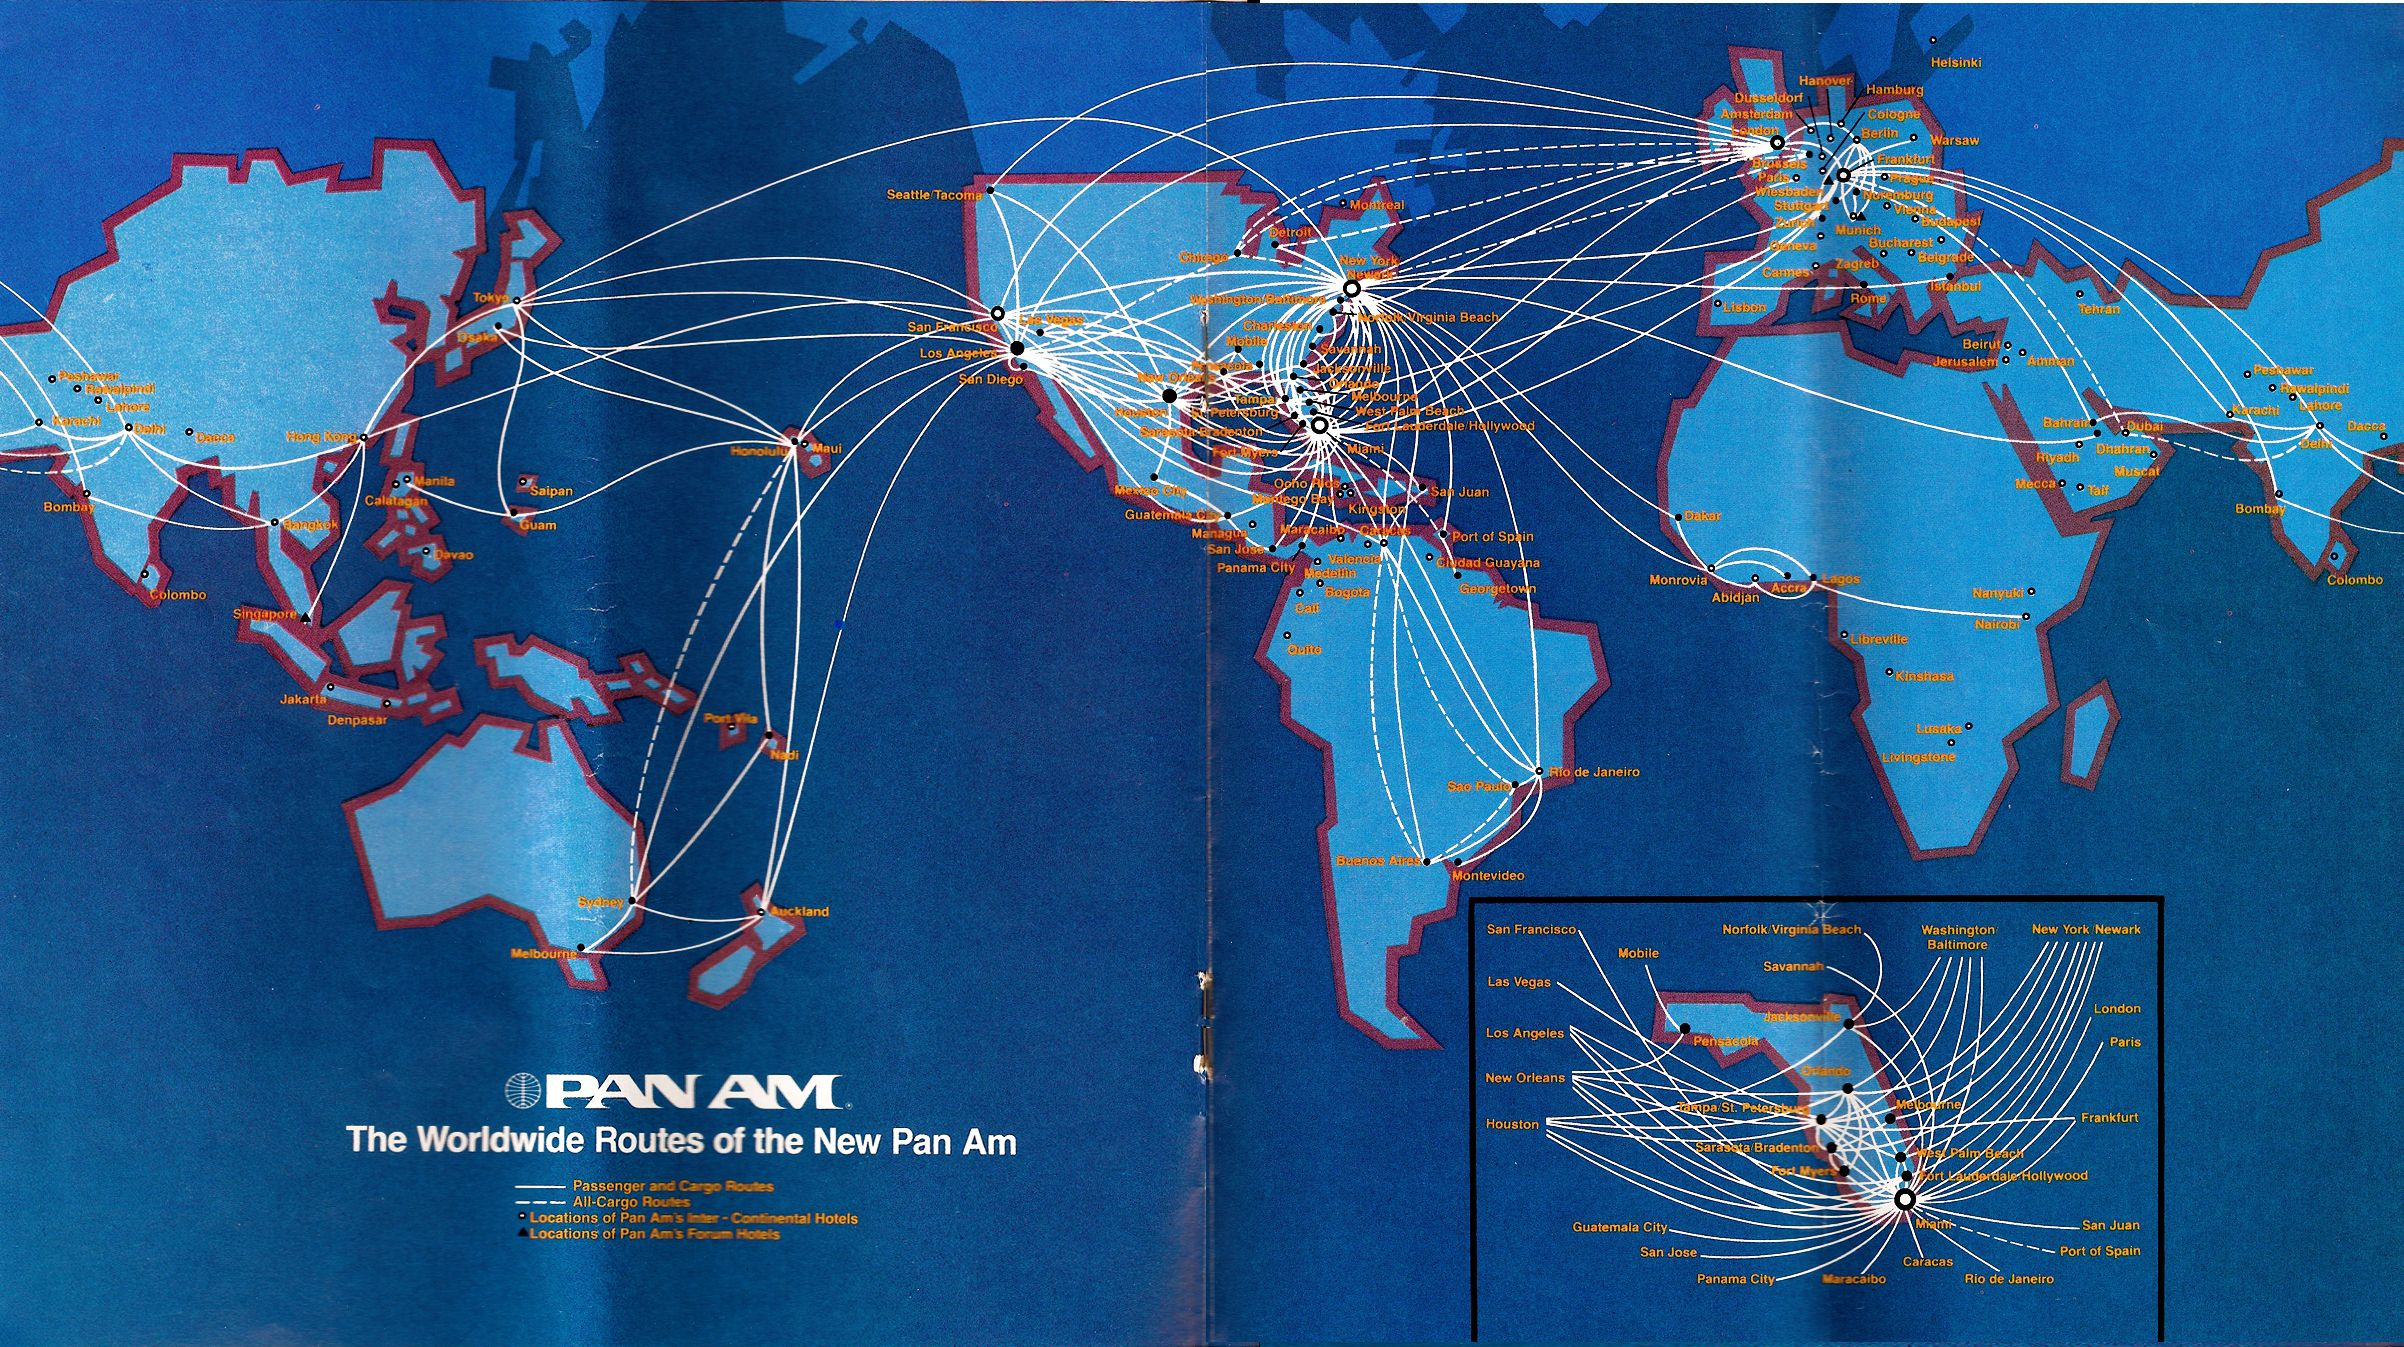 Pan Am Route Map  Airline Route Maps Pinterest - Map of major air routes in the us